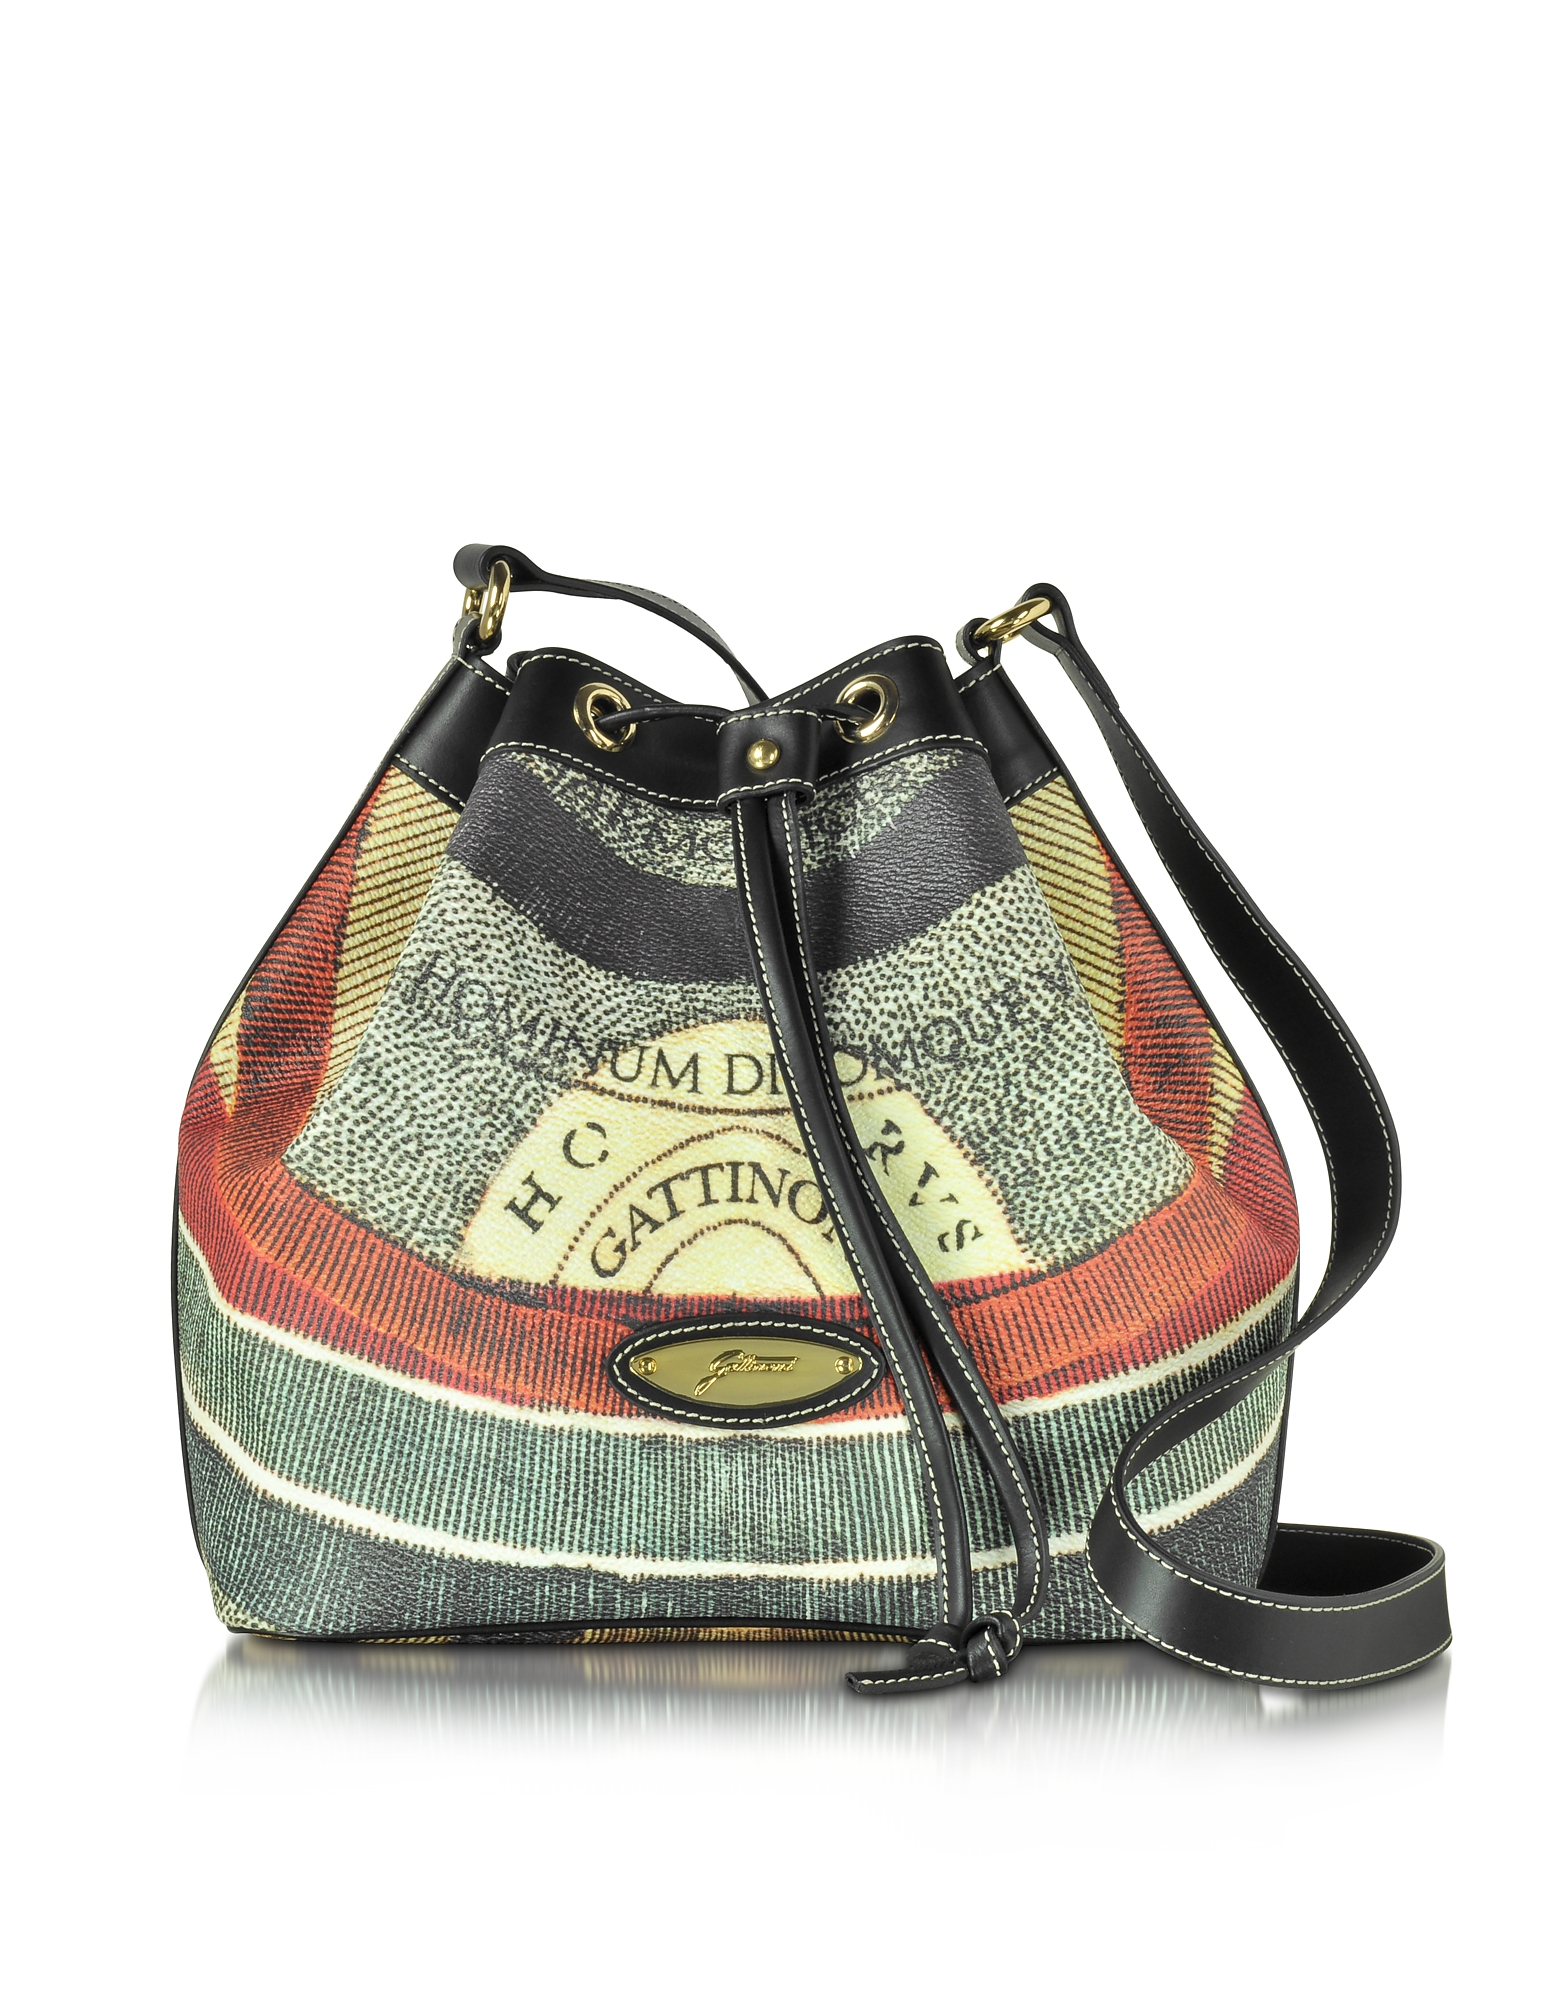 Gattinoni Handbags, Planetarium Coated Canvas and Leather Bucket Bag